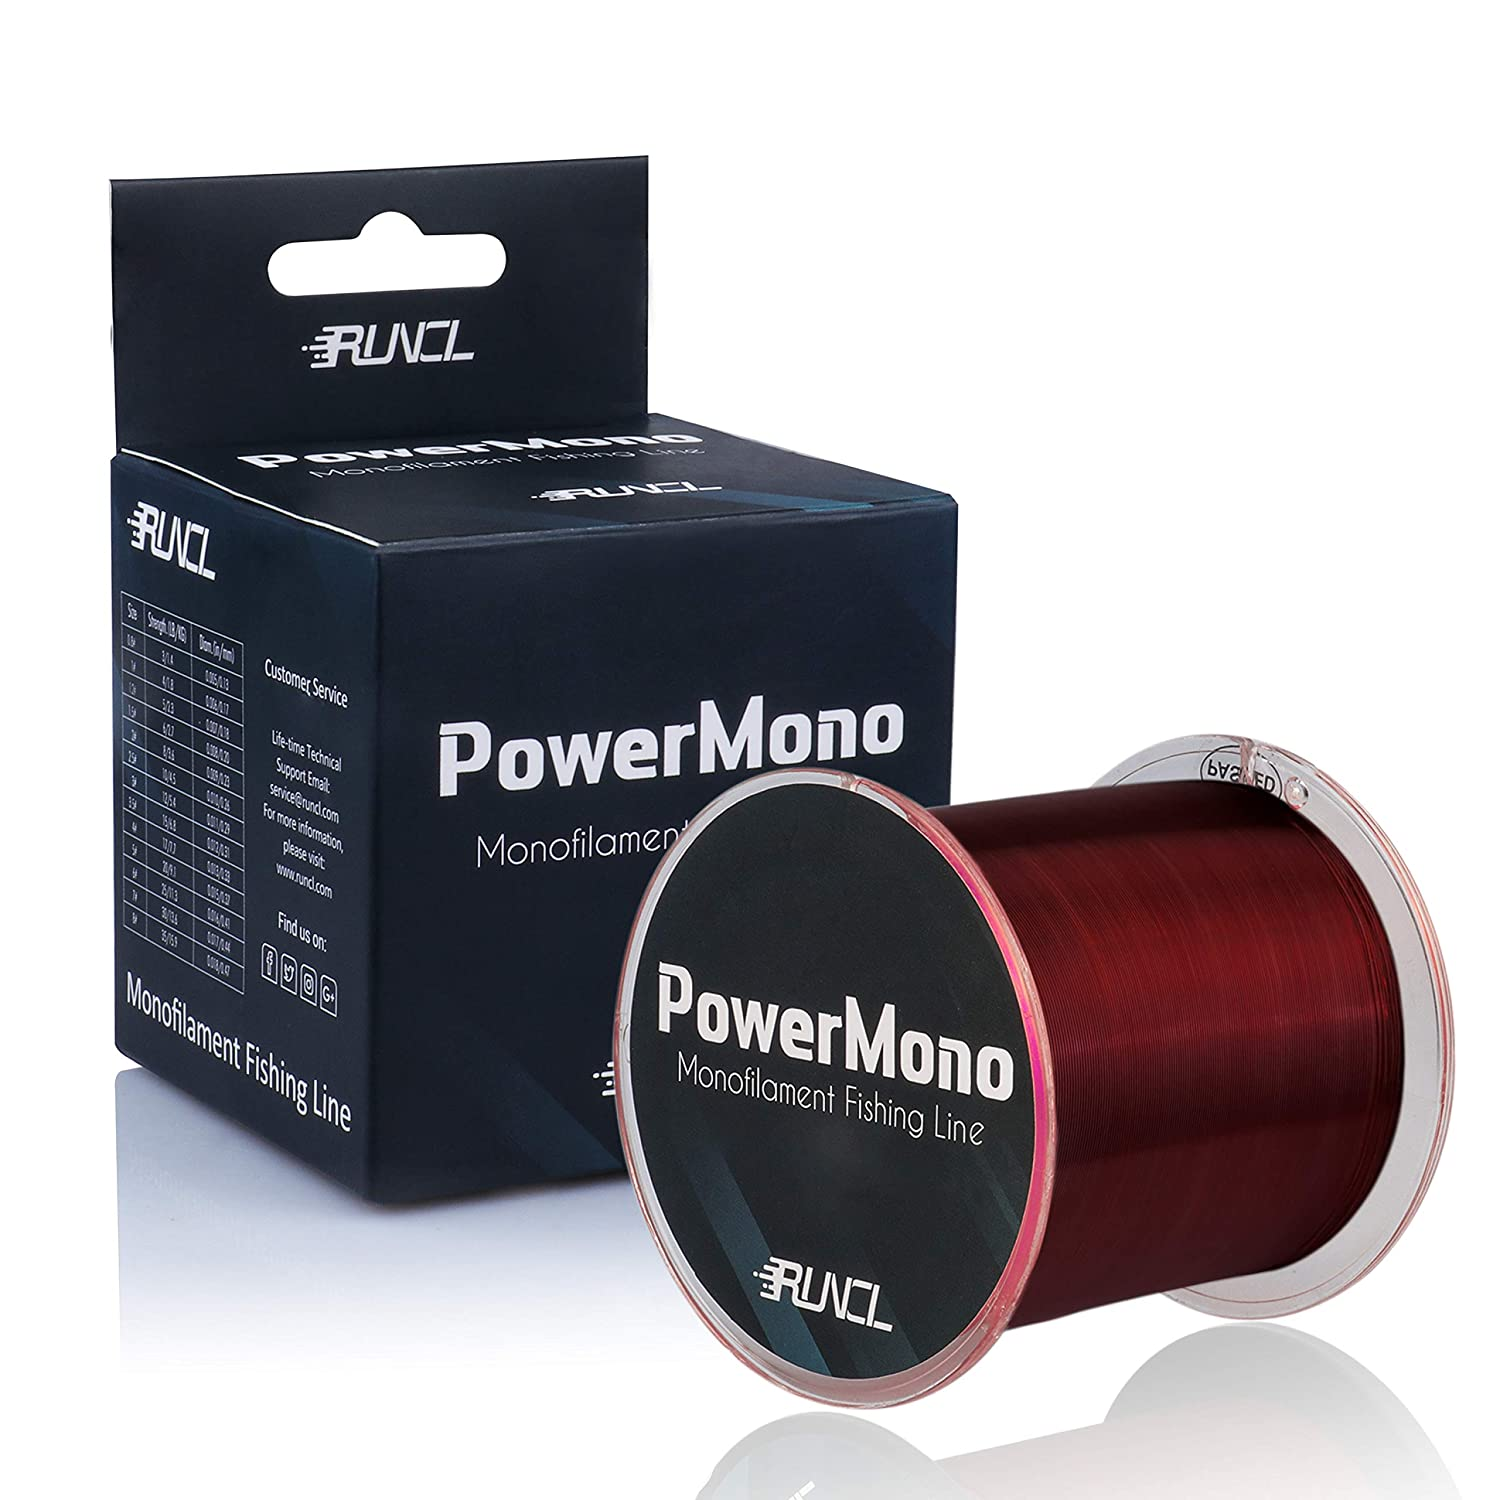 RUNCL PowerMono Fishing Line, Monofilament Fishing Line 300 500 1000Yds – Ultimate Strength, Shock Absorber, Suspend in Water, Knot Friendly – Mono Fishing Line 3-35LB, Low- High-Vis Available